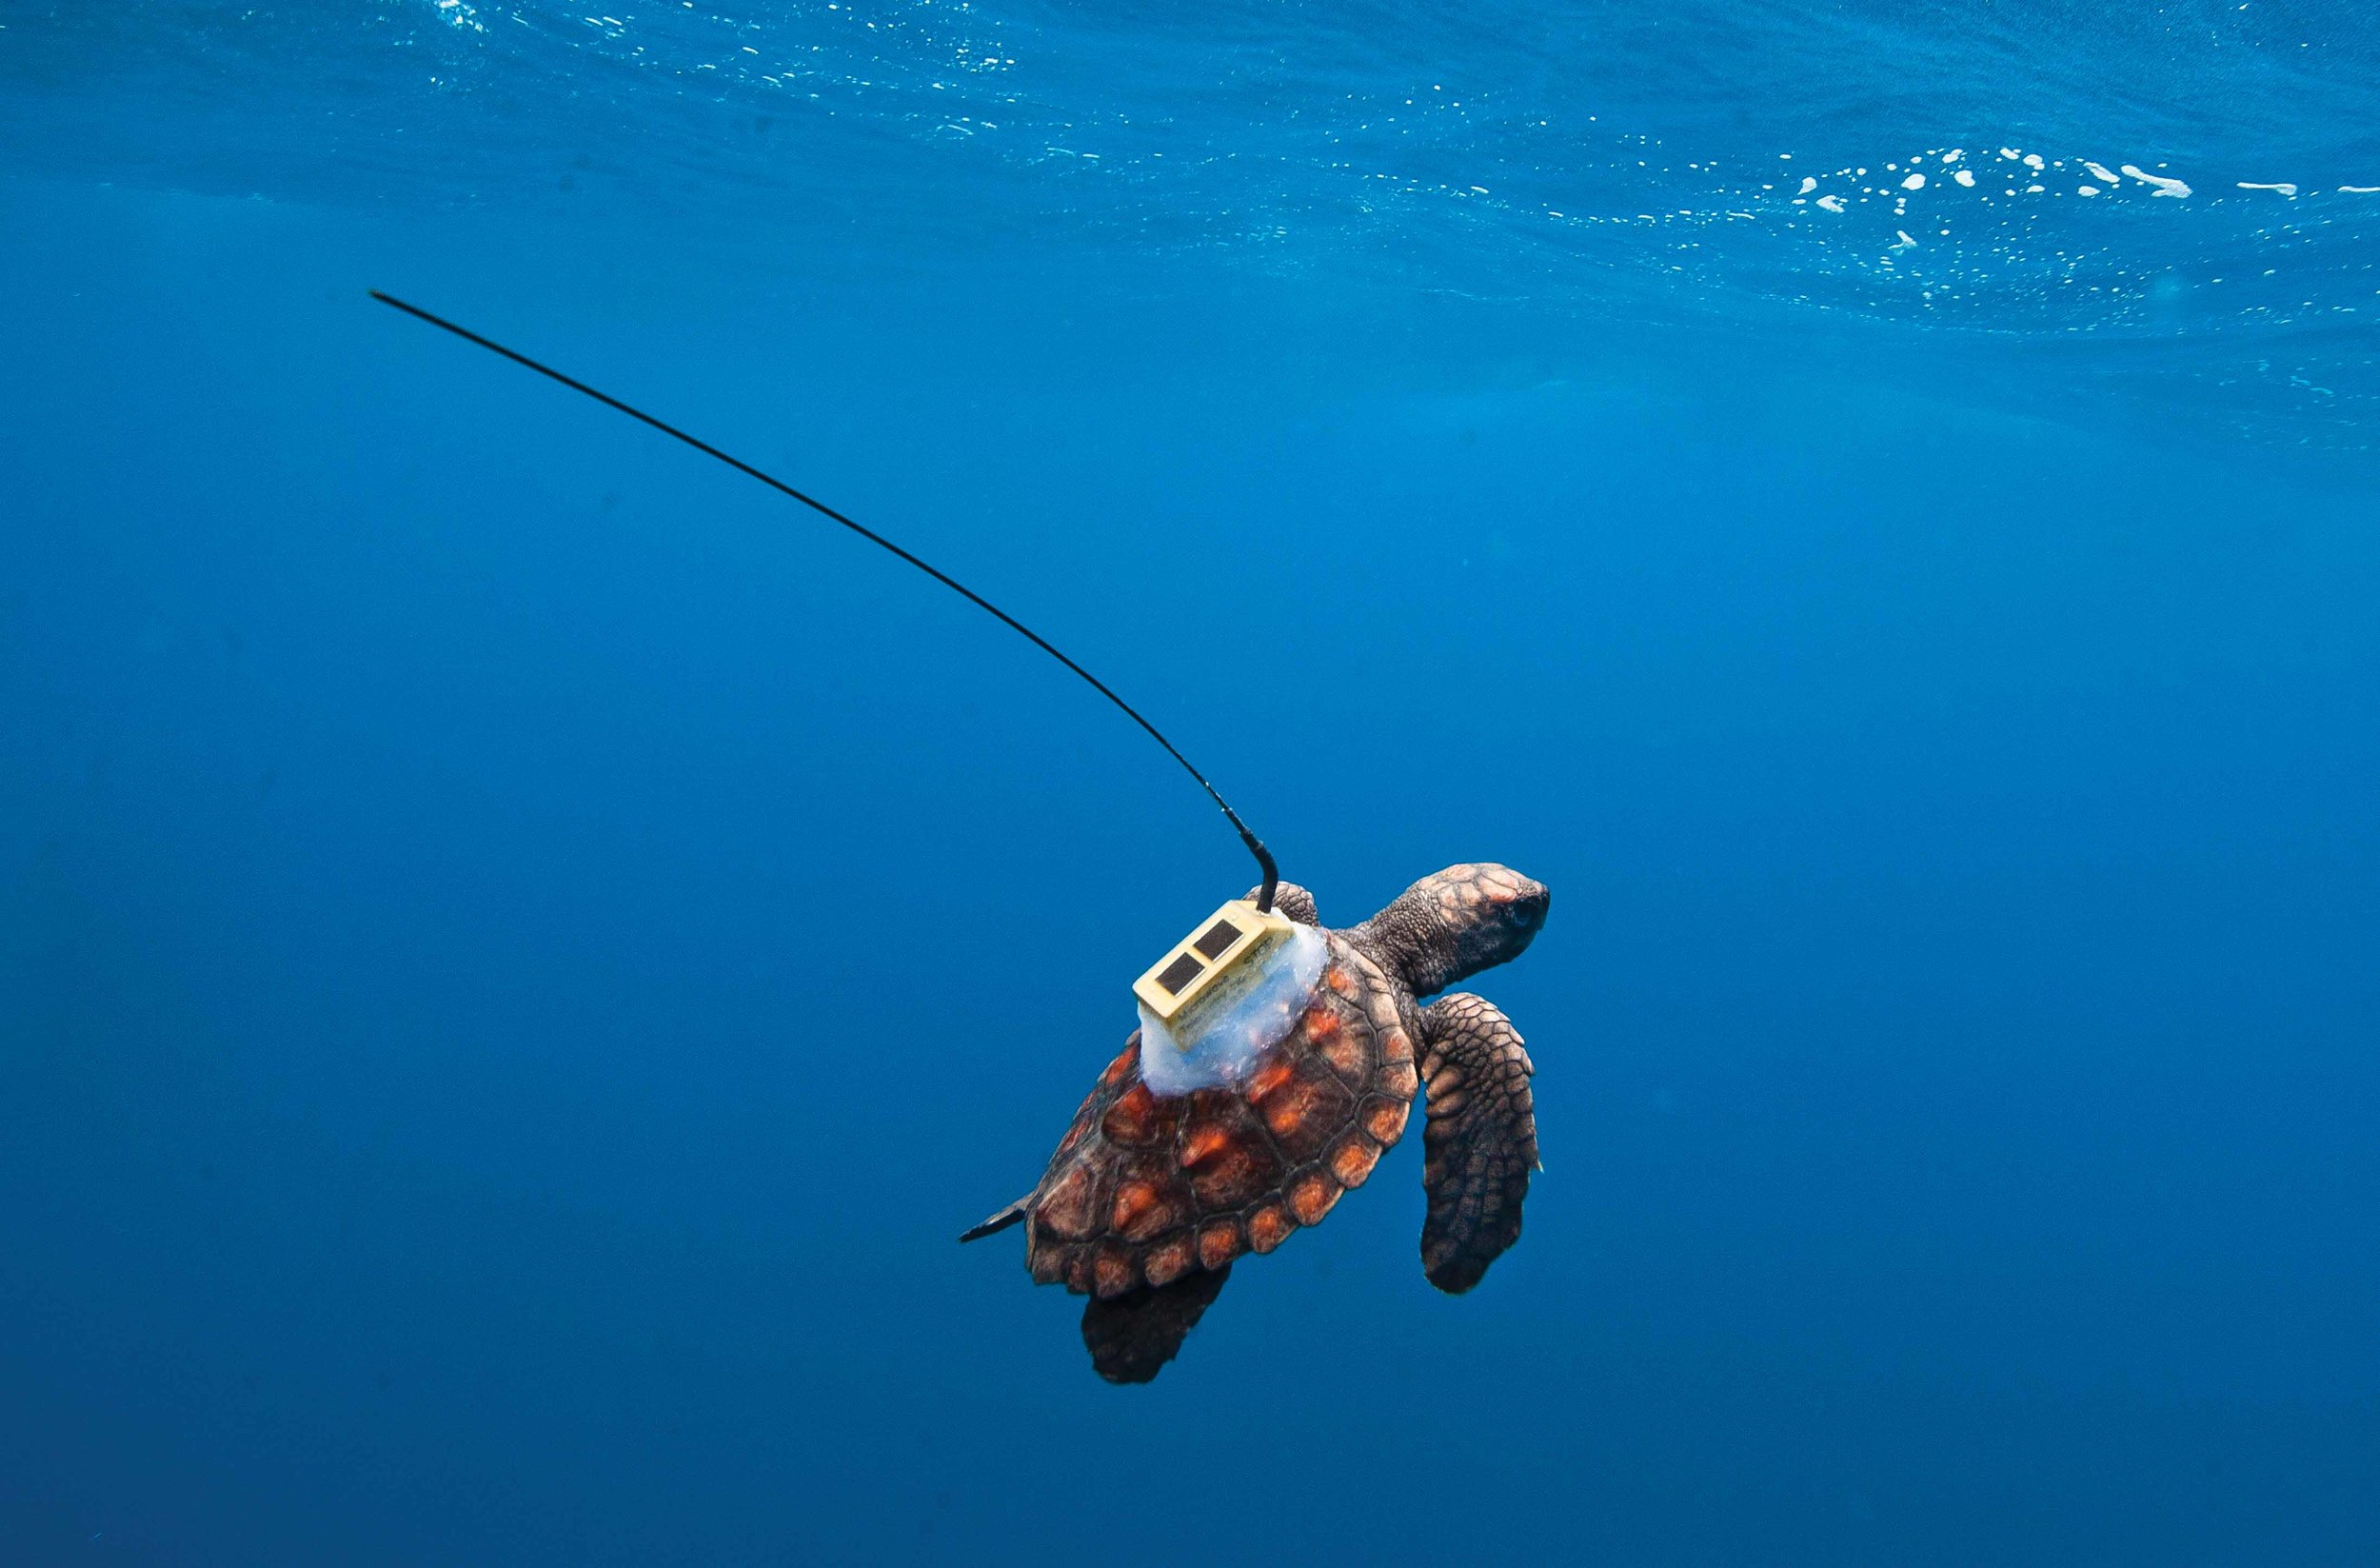 """A far cry from early methods, modern technology has enabled scientists to study sea turtles' """"lost years"""" using solar powered tracking devices. © Projeto Tamar / NOAA / University of Central Florida"""